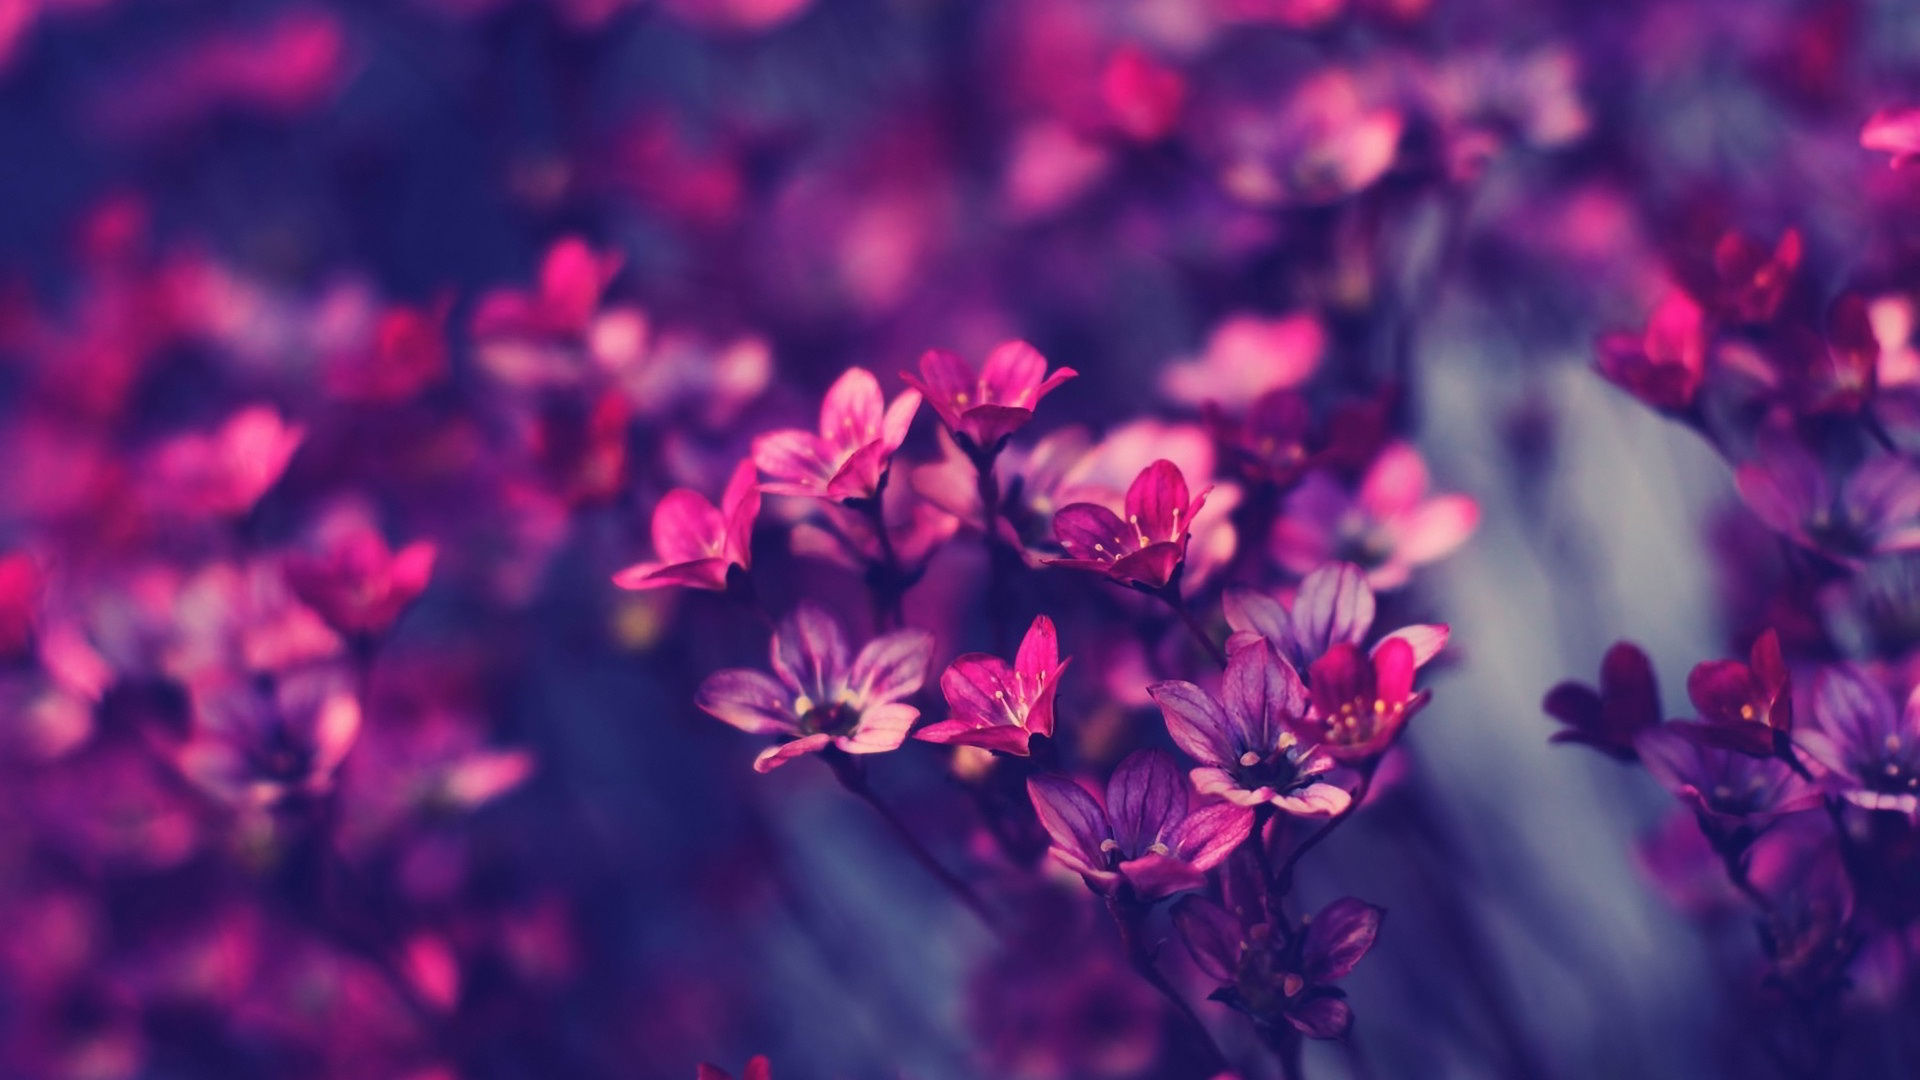 violet-flower-images-and-wallpapers-12